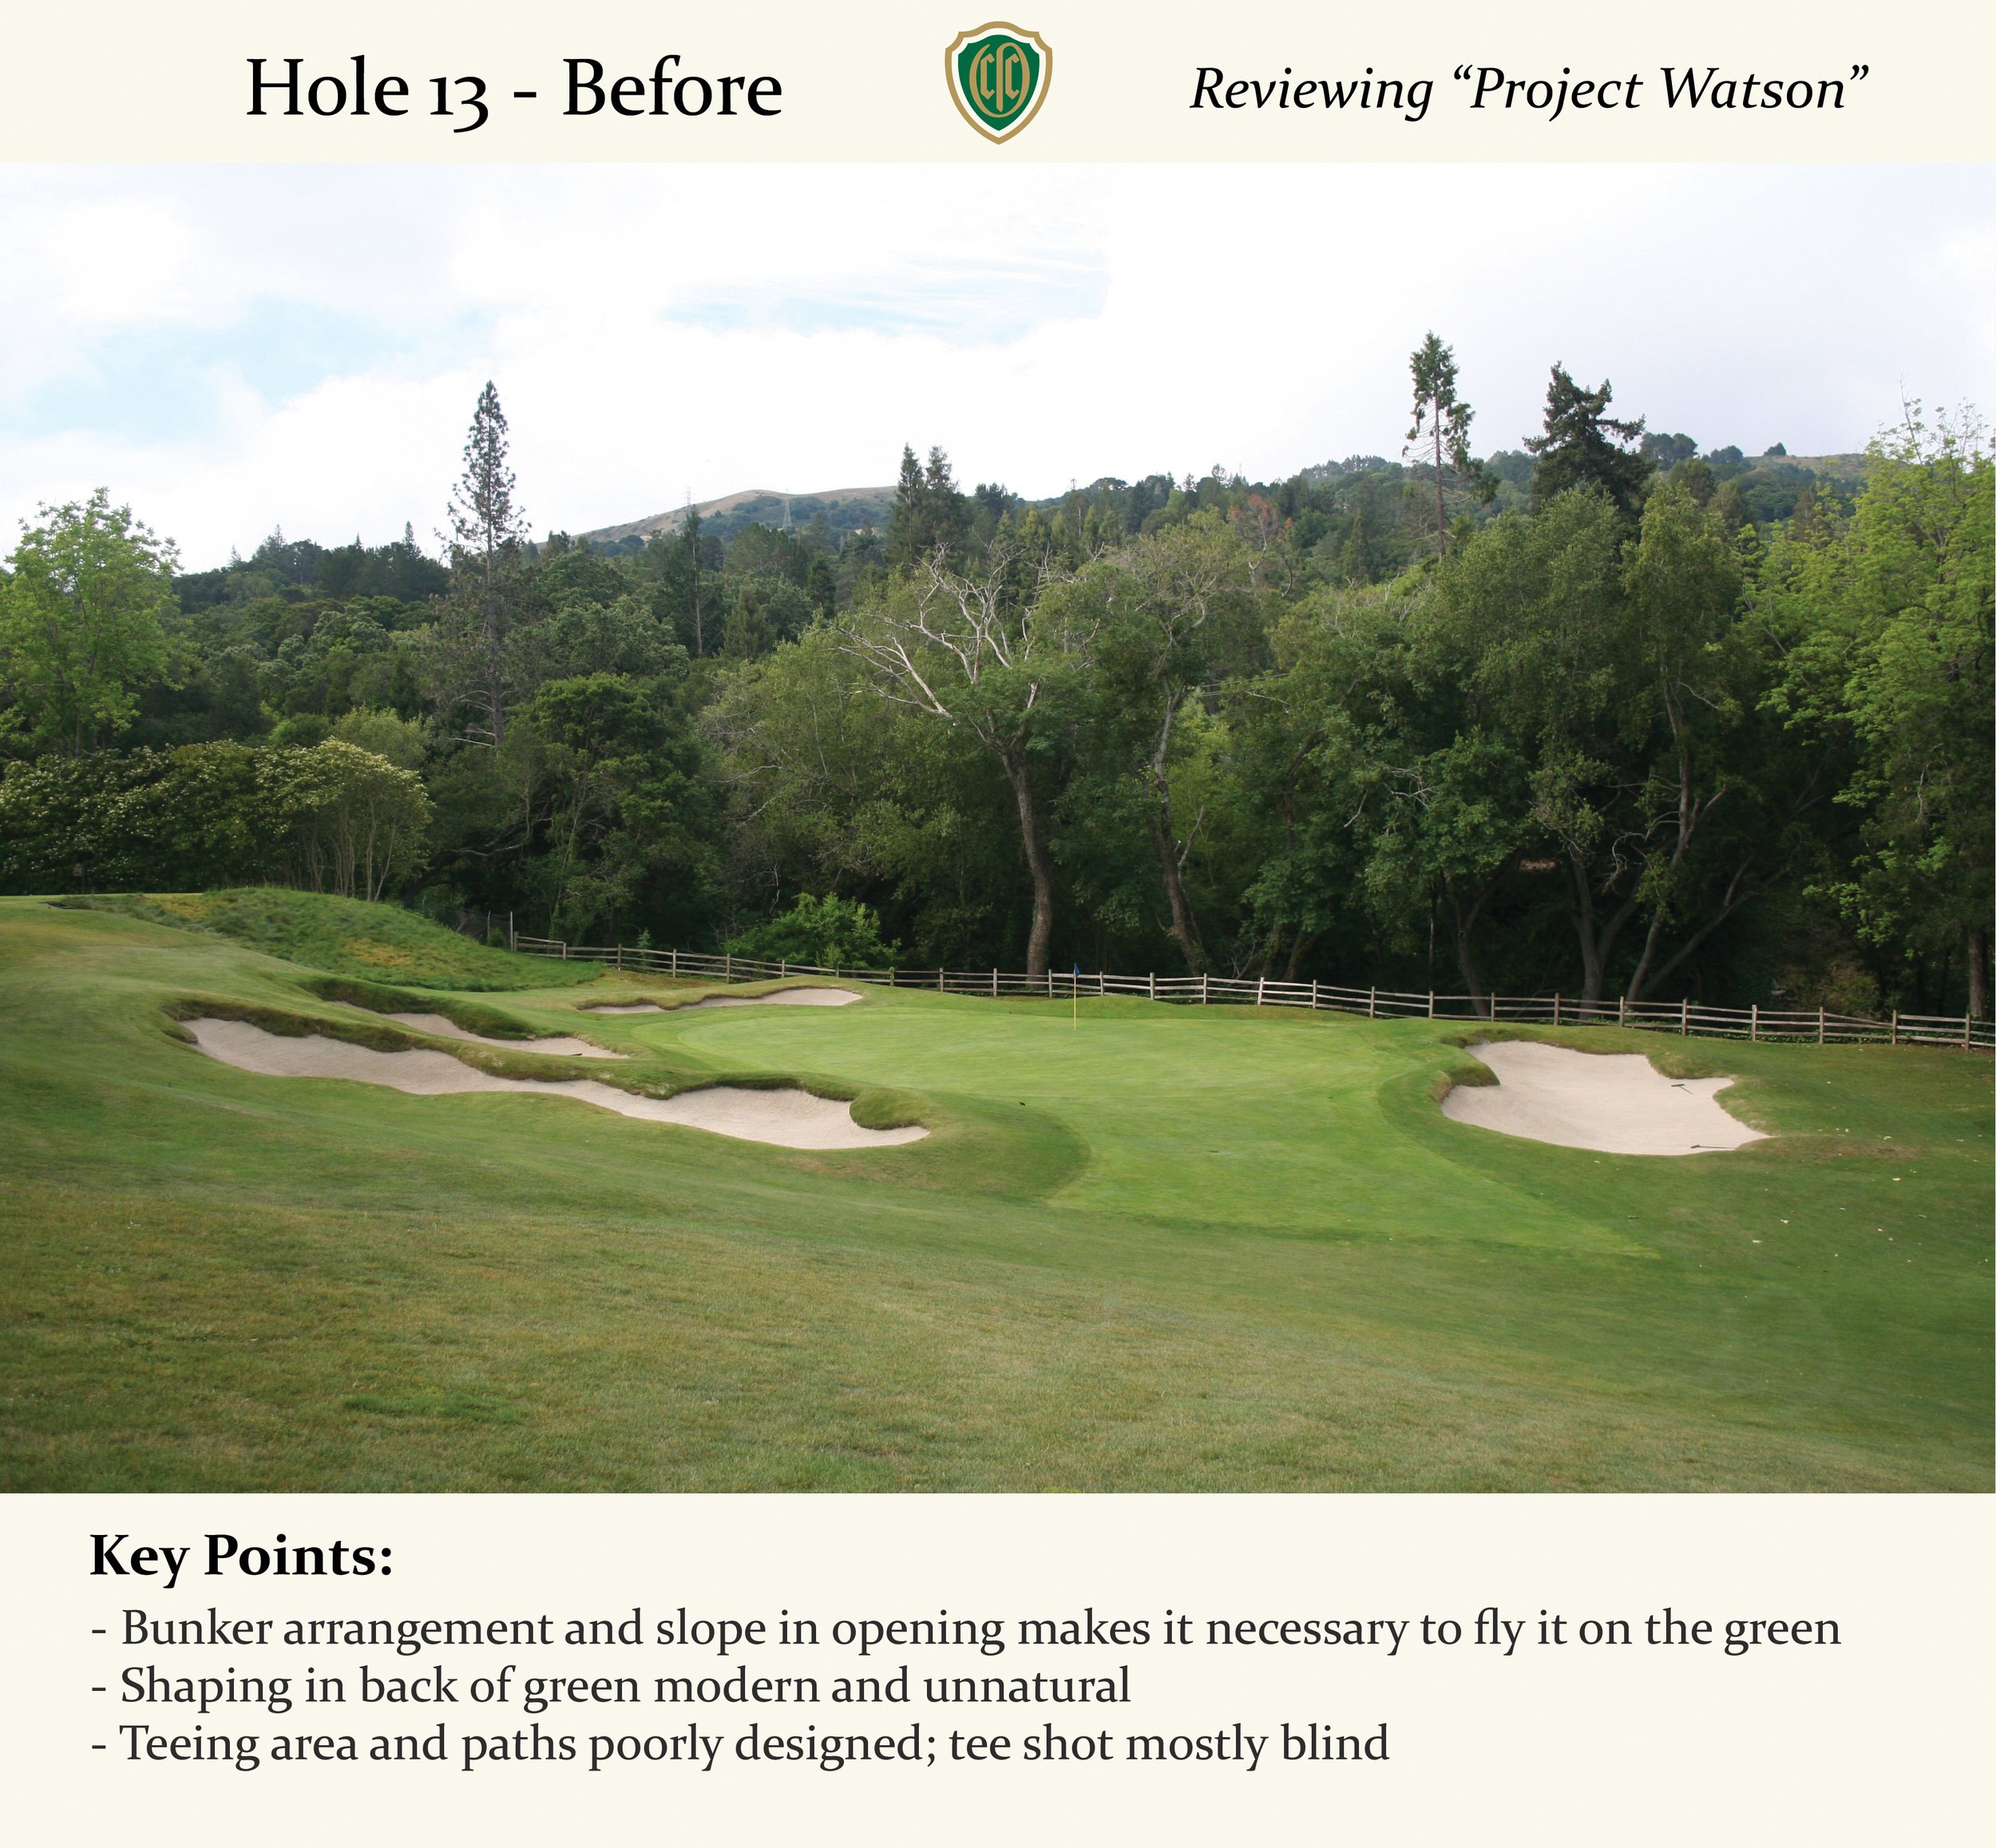 Even if you tried slotting a shot through the opening, it was likely to kick right and into the bunker.